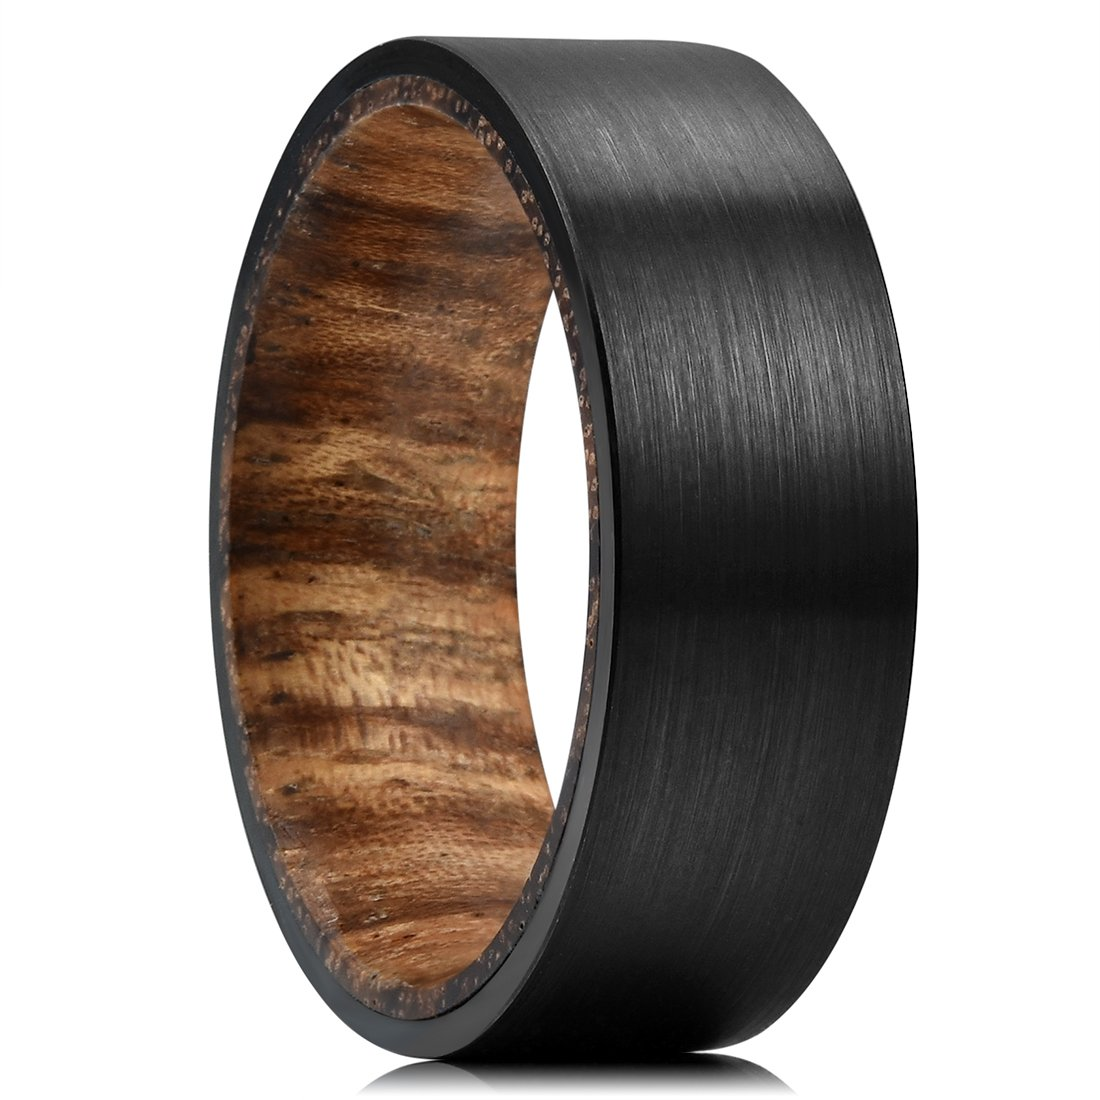 Three Keys Jewelry 8mm Mens Tungsten Wedding Ring Black Brushed with Zebra Wood Inner Flat Hunting Ring Wedding Band Engagement Ring Size 12.5